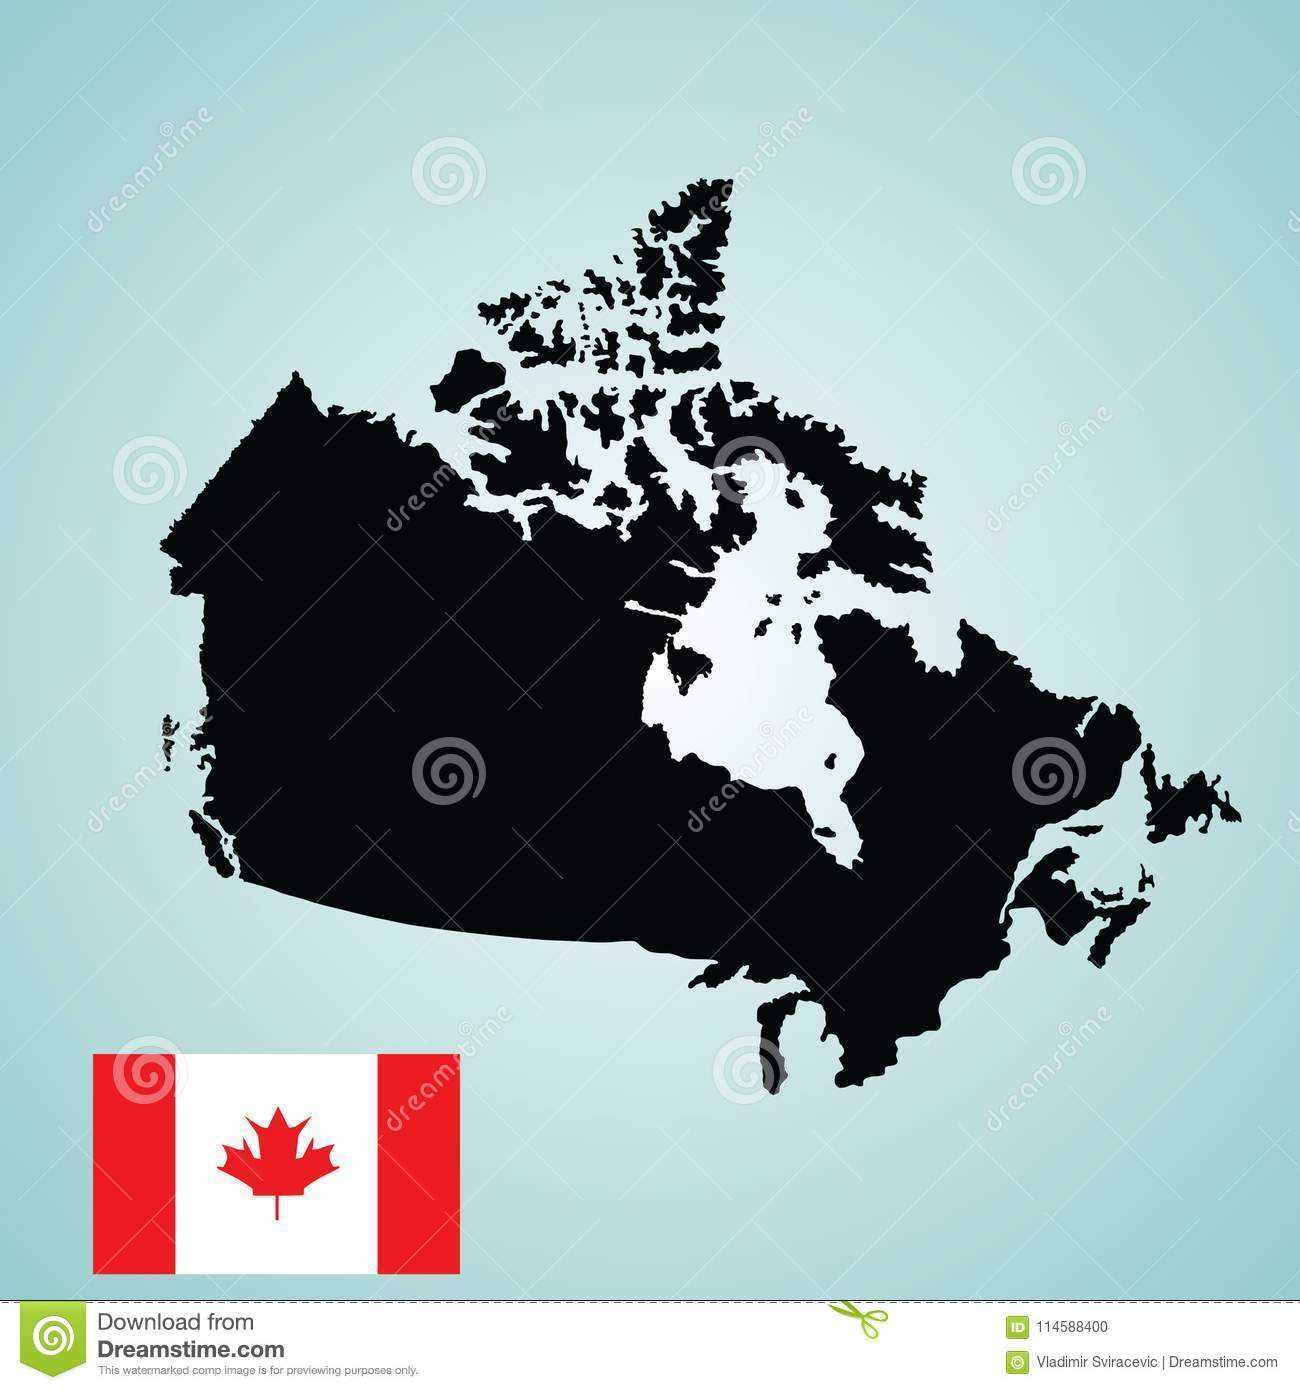 Map Of Canada Silhouette.Canada Map Silhouette And Canada Flag Stock Illustration